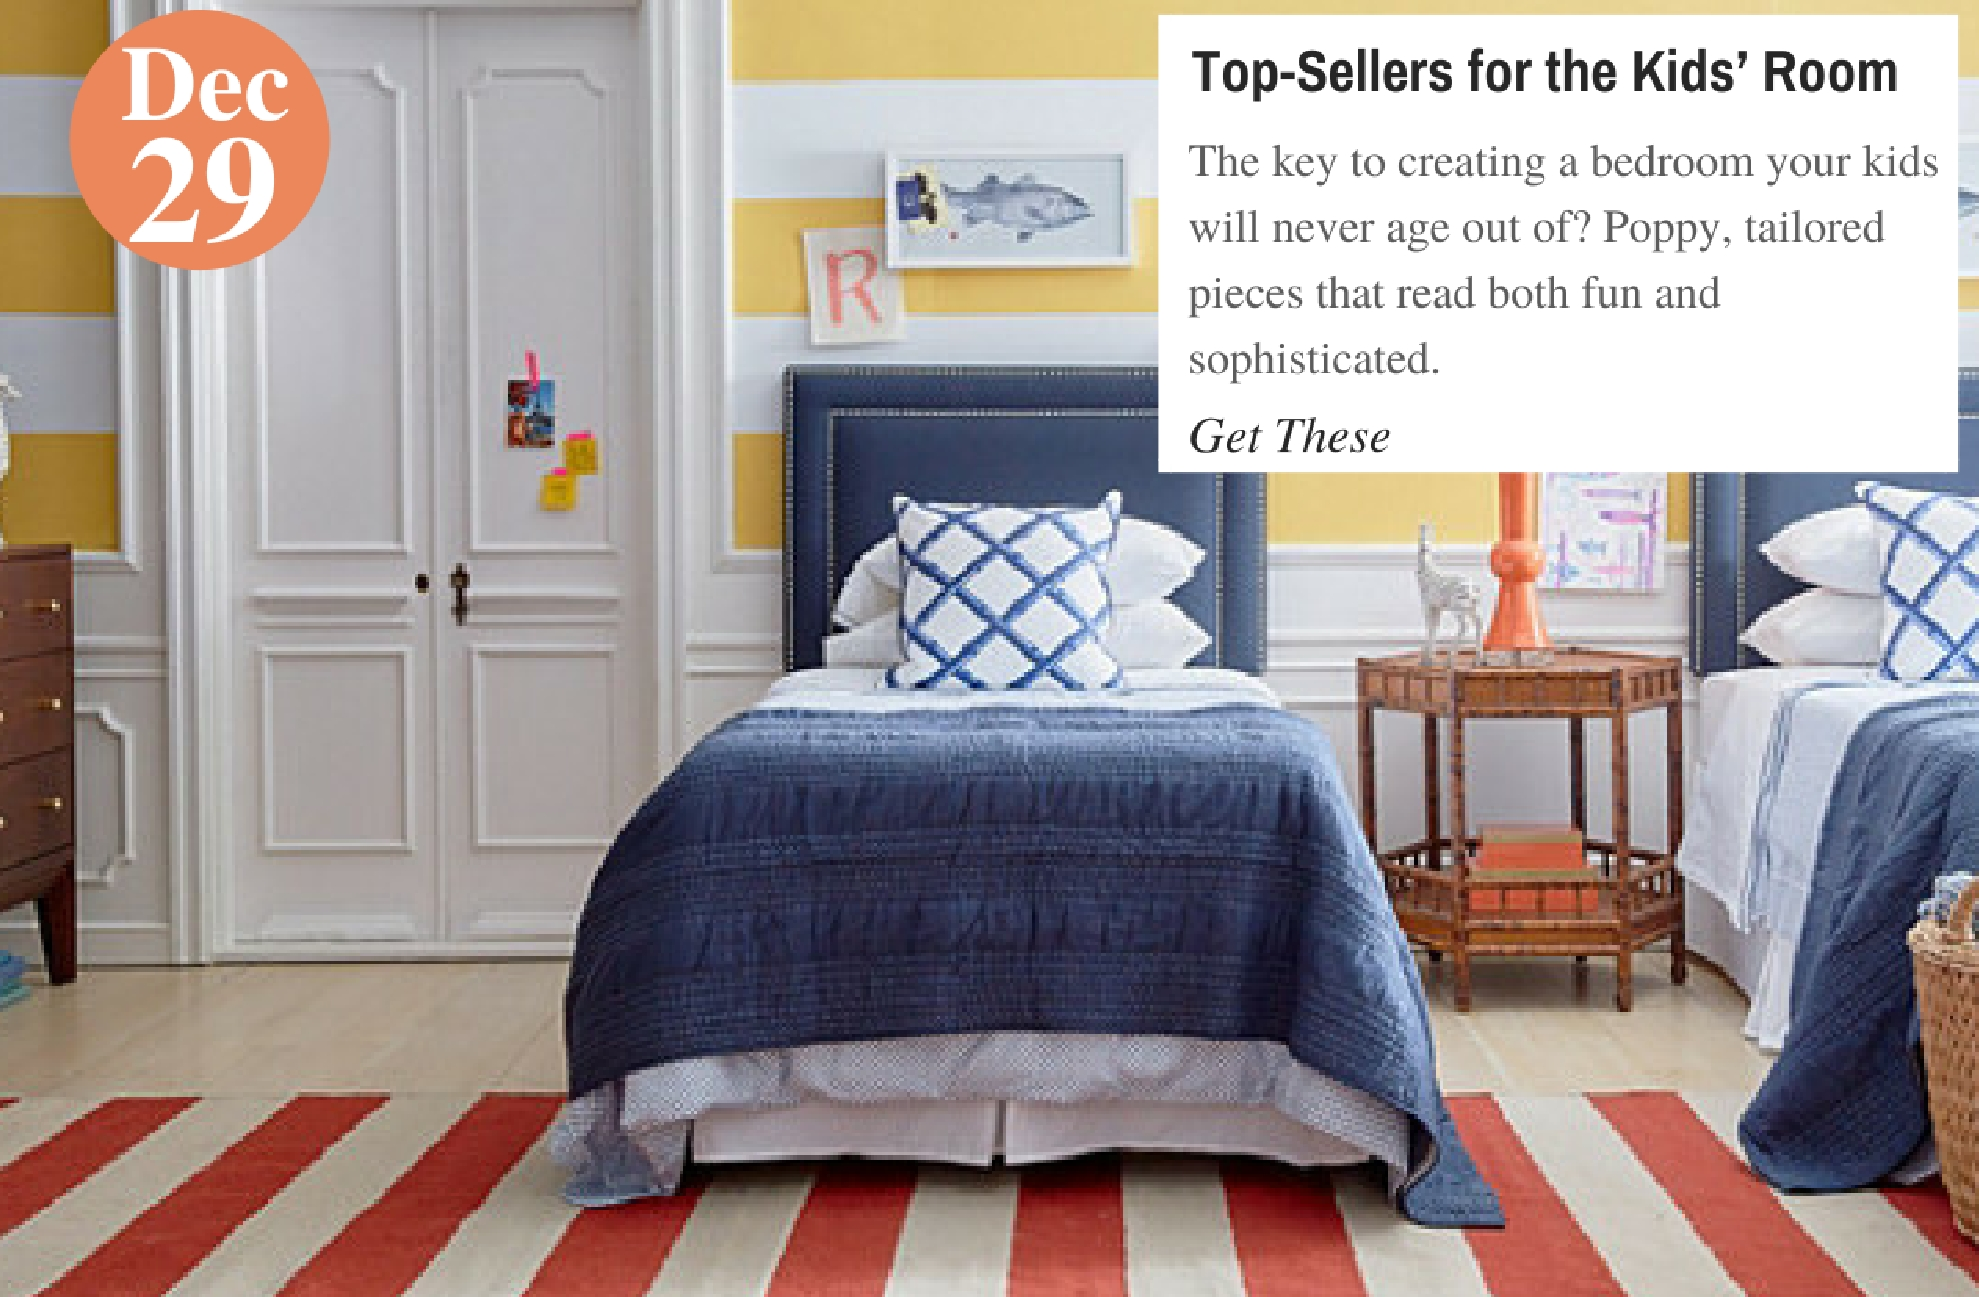 Top-Sellers for the Kids' Room